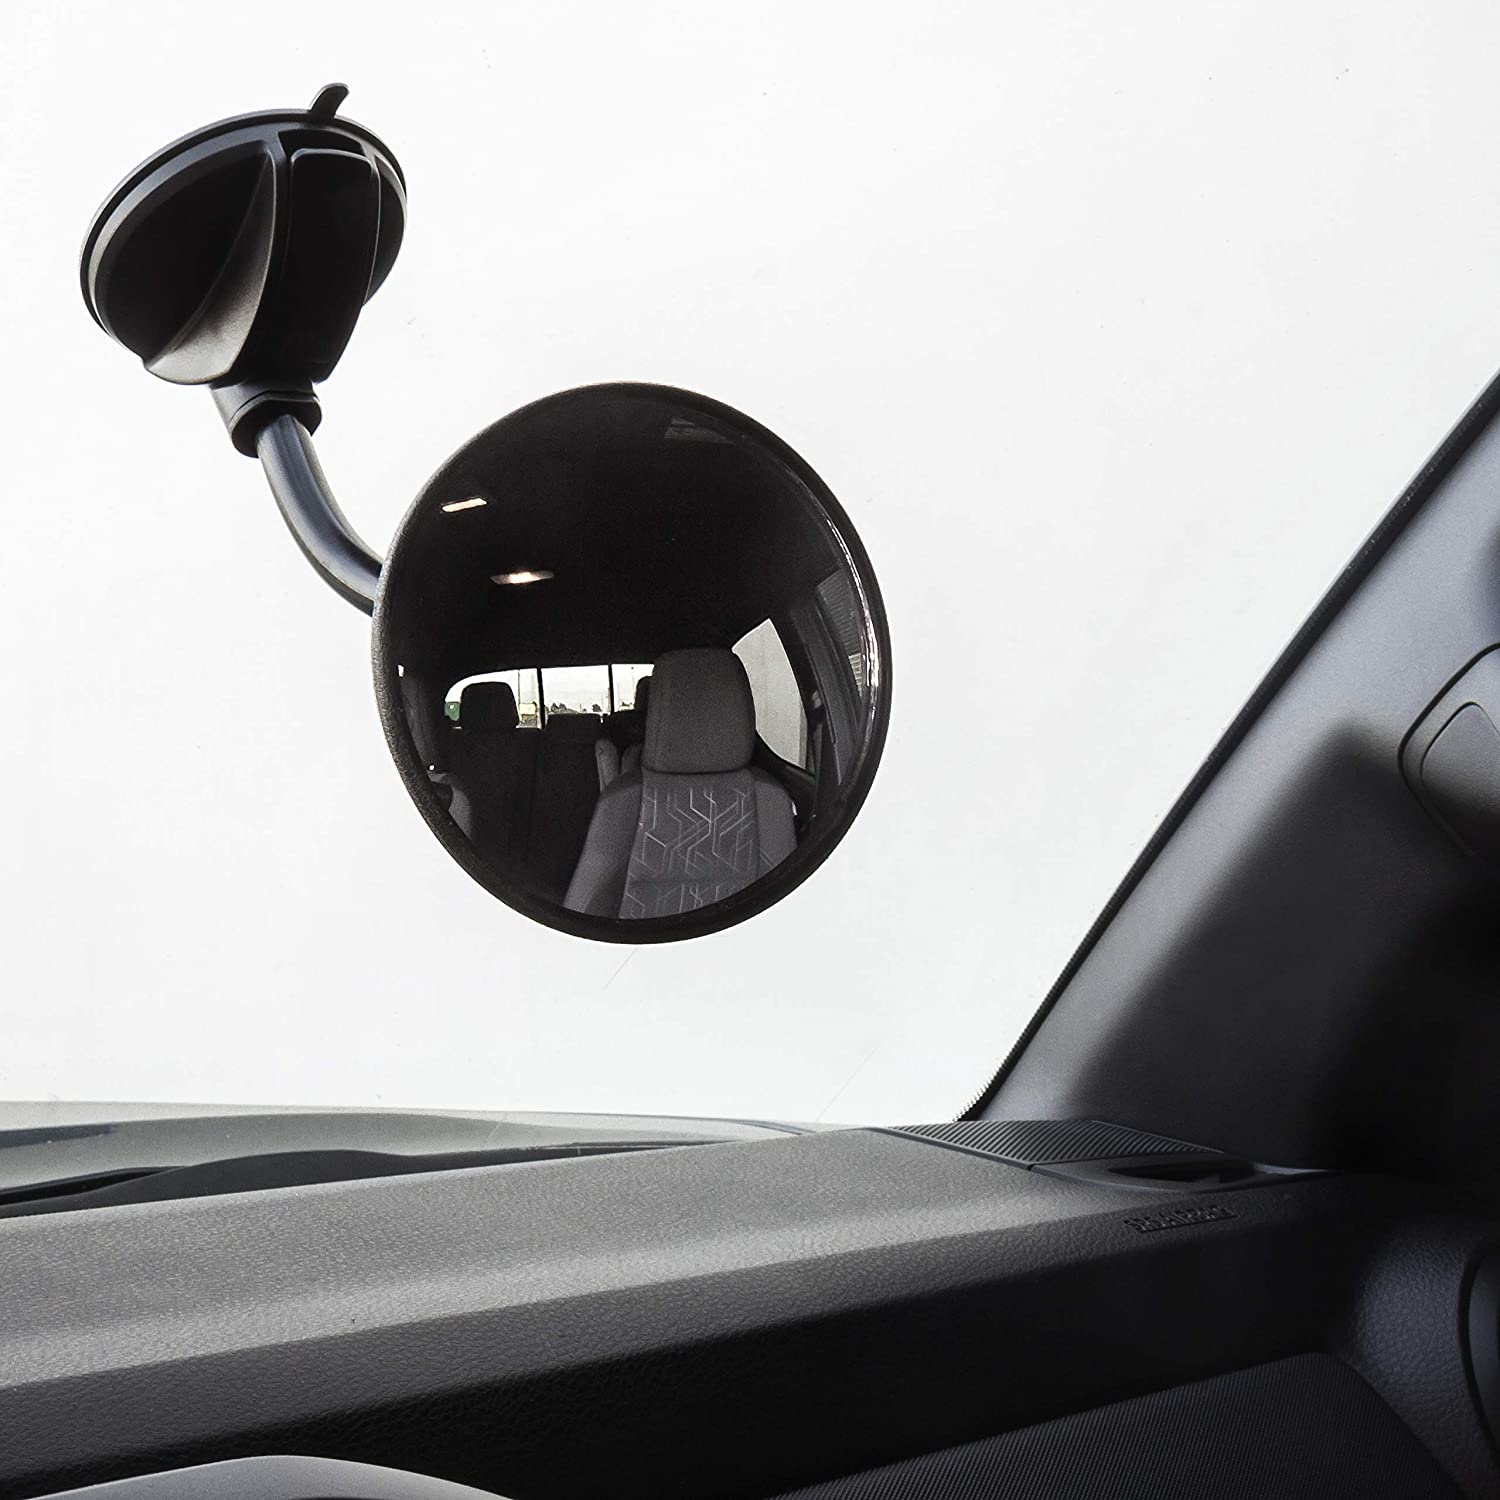 Pilot Automotive MI-442 Convex Baby Mirror with Suction Cup /& Flexible Arm